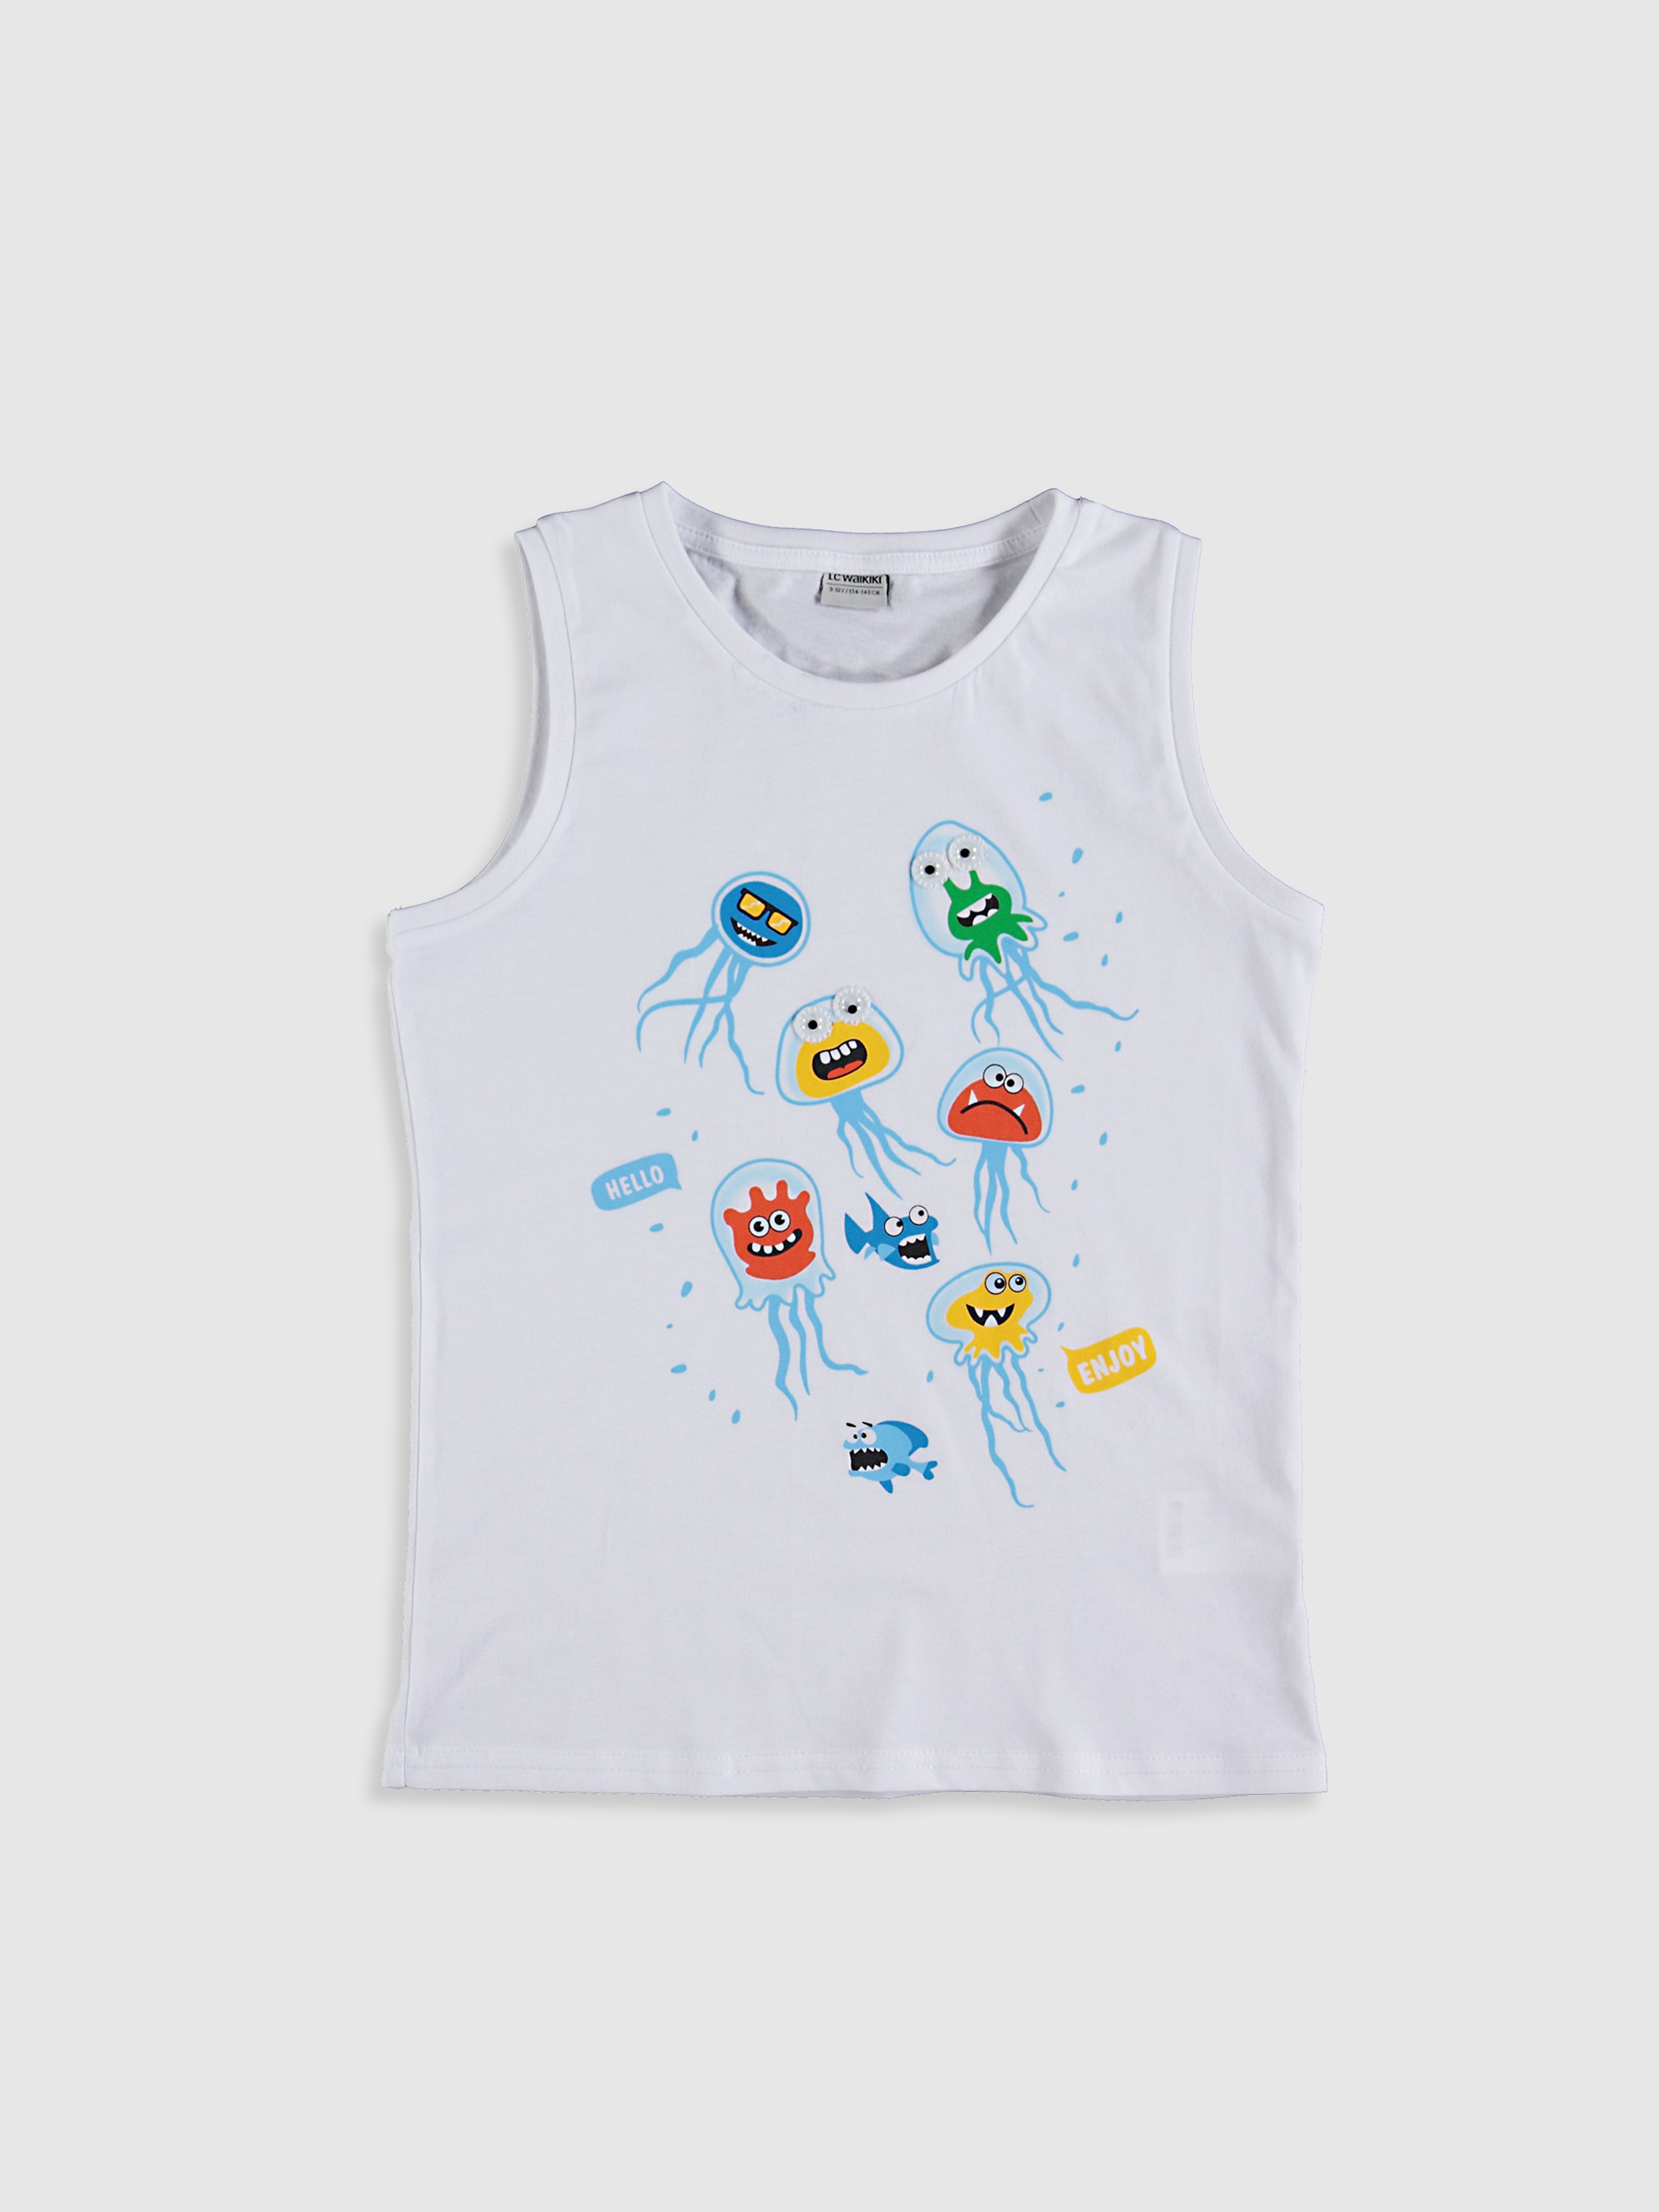 WHITE - Boy's Printed Cotton Tank Top - 0SB592Z4